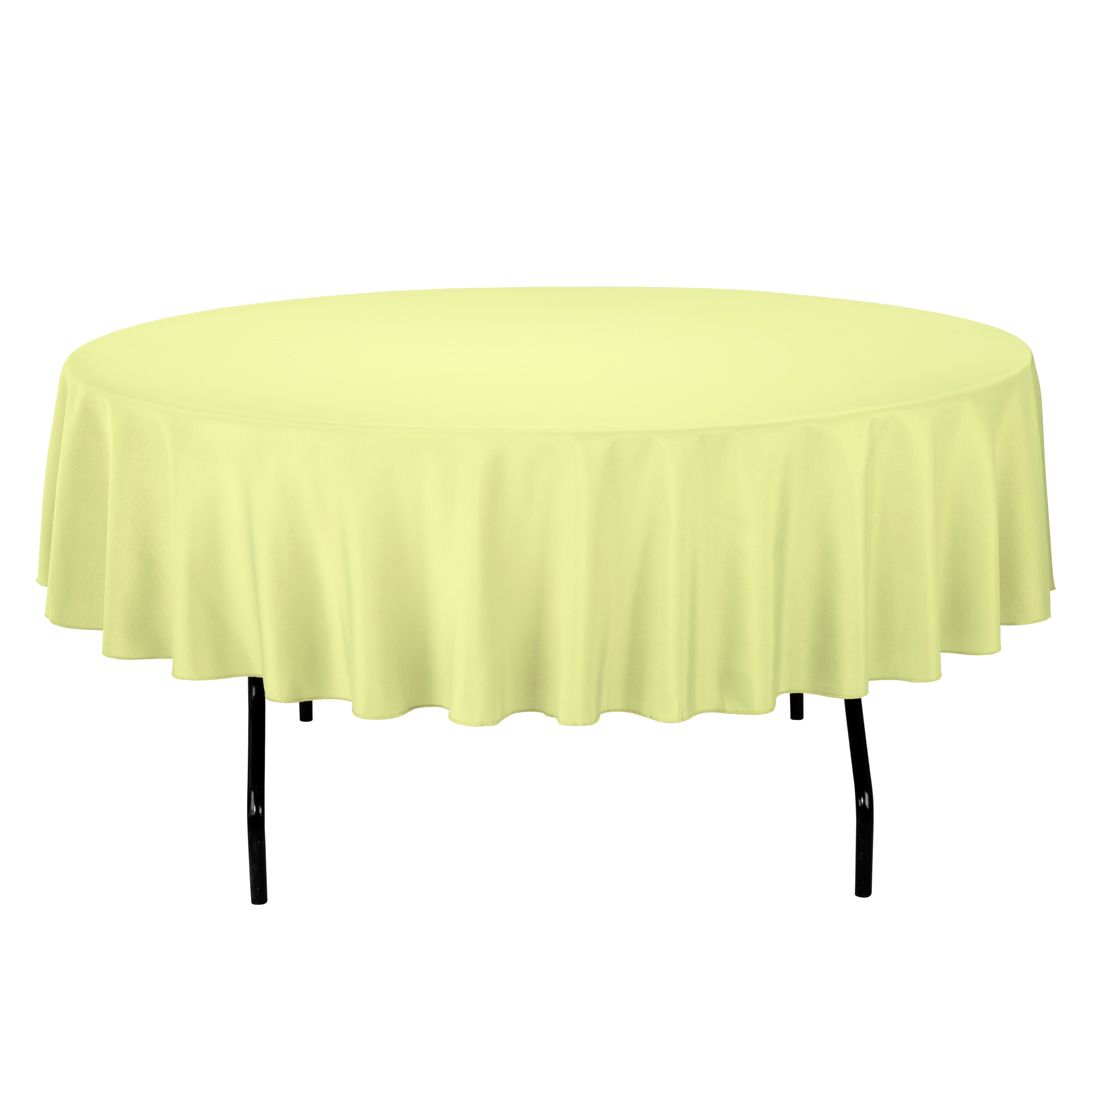 90 in. Round Polyester Tablecloth Tea Green